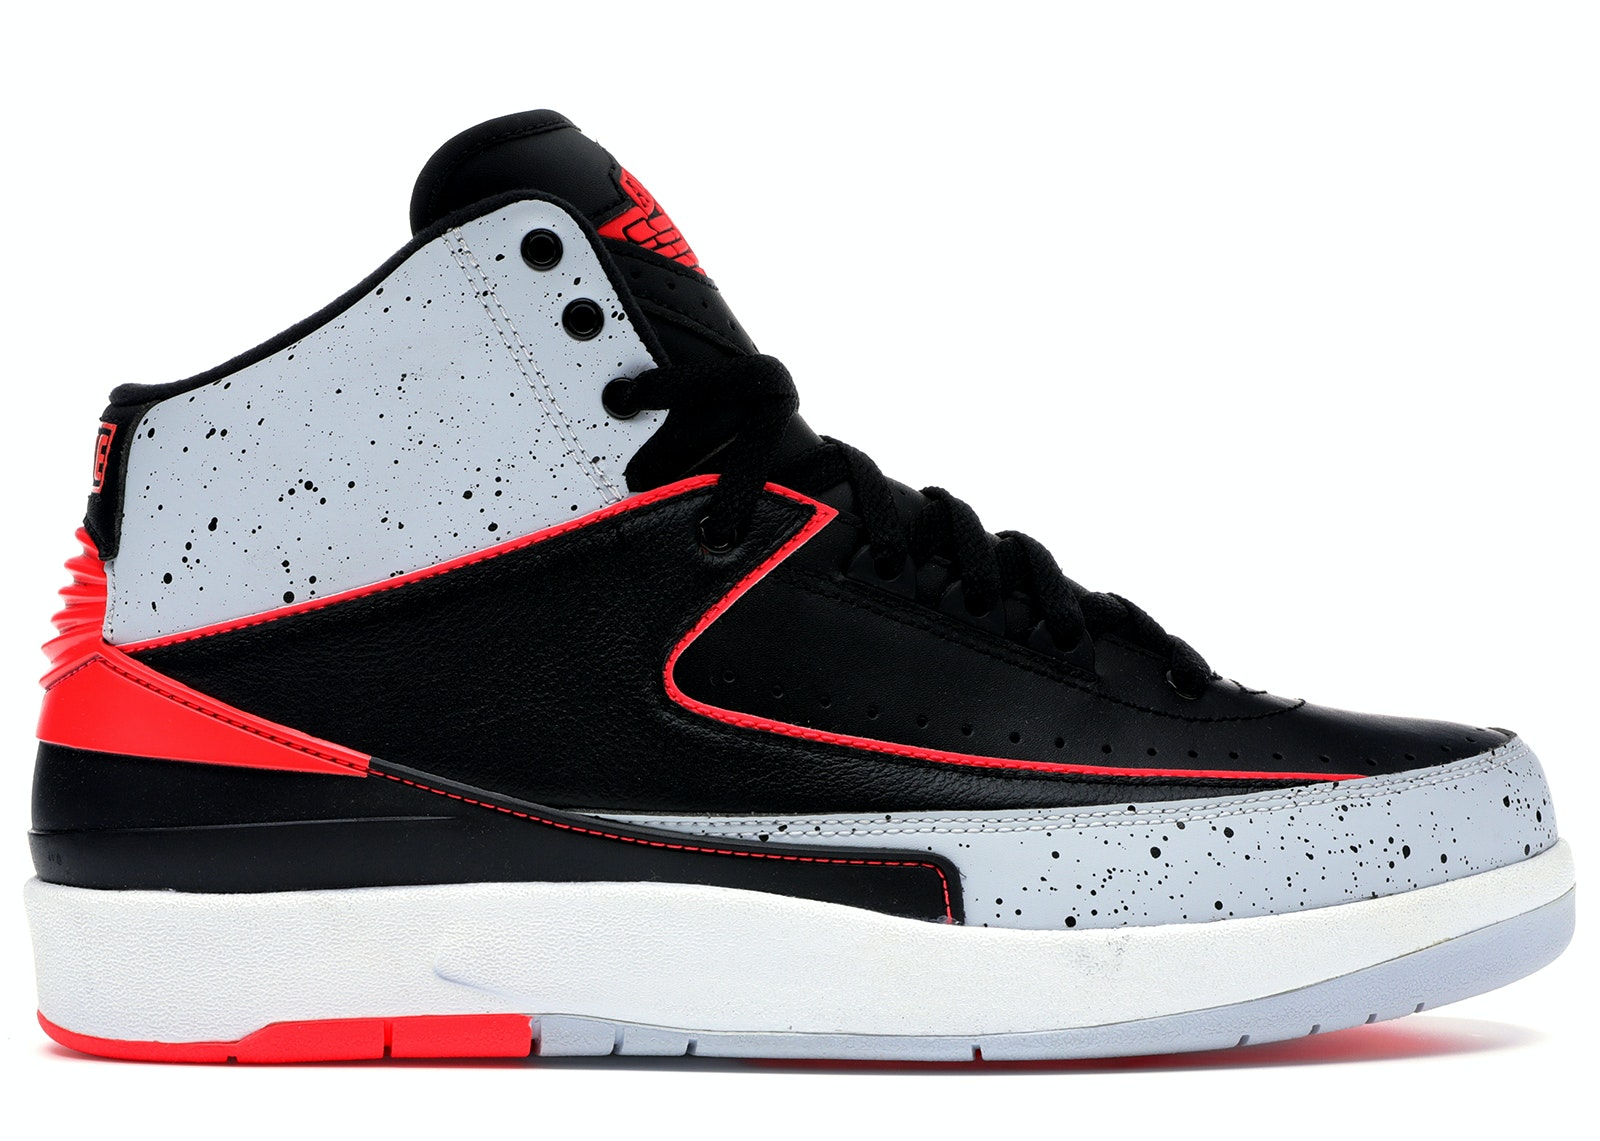 Jordan 2 Retro Infrared Cement